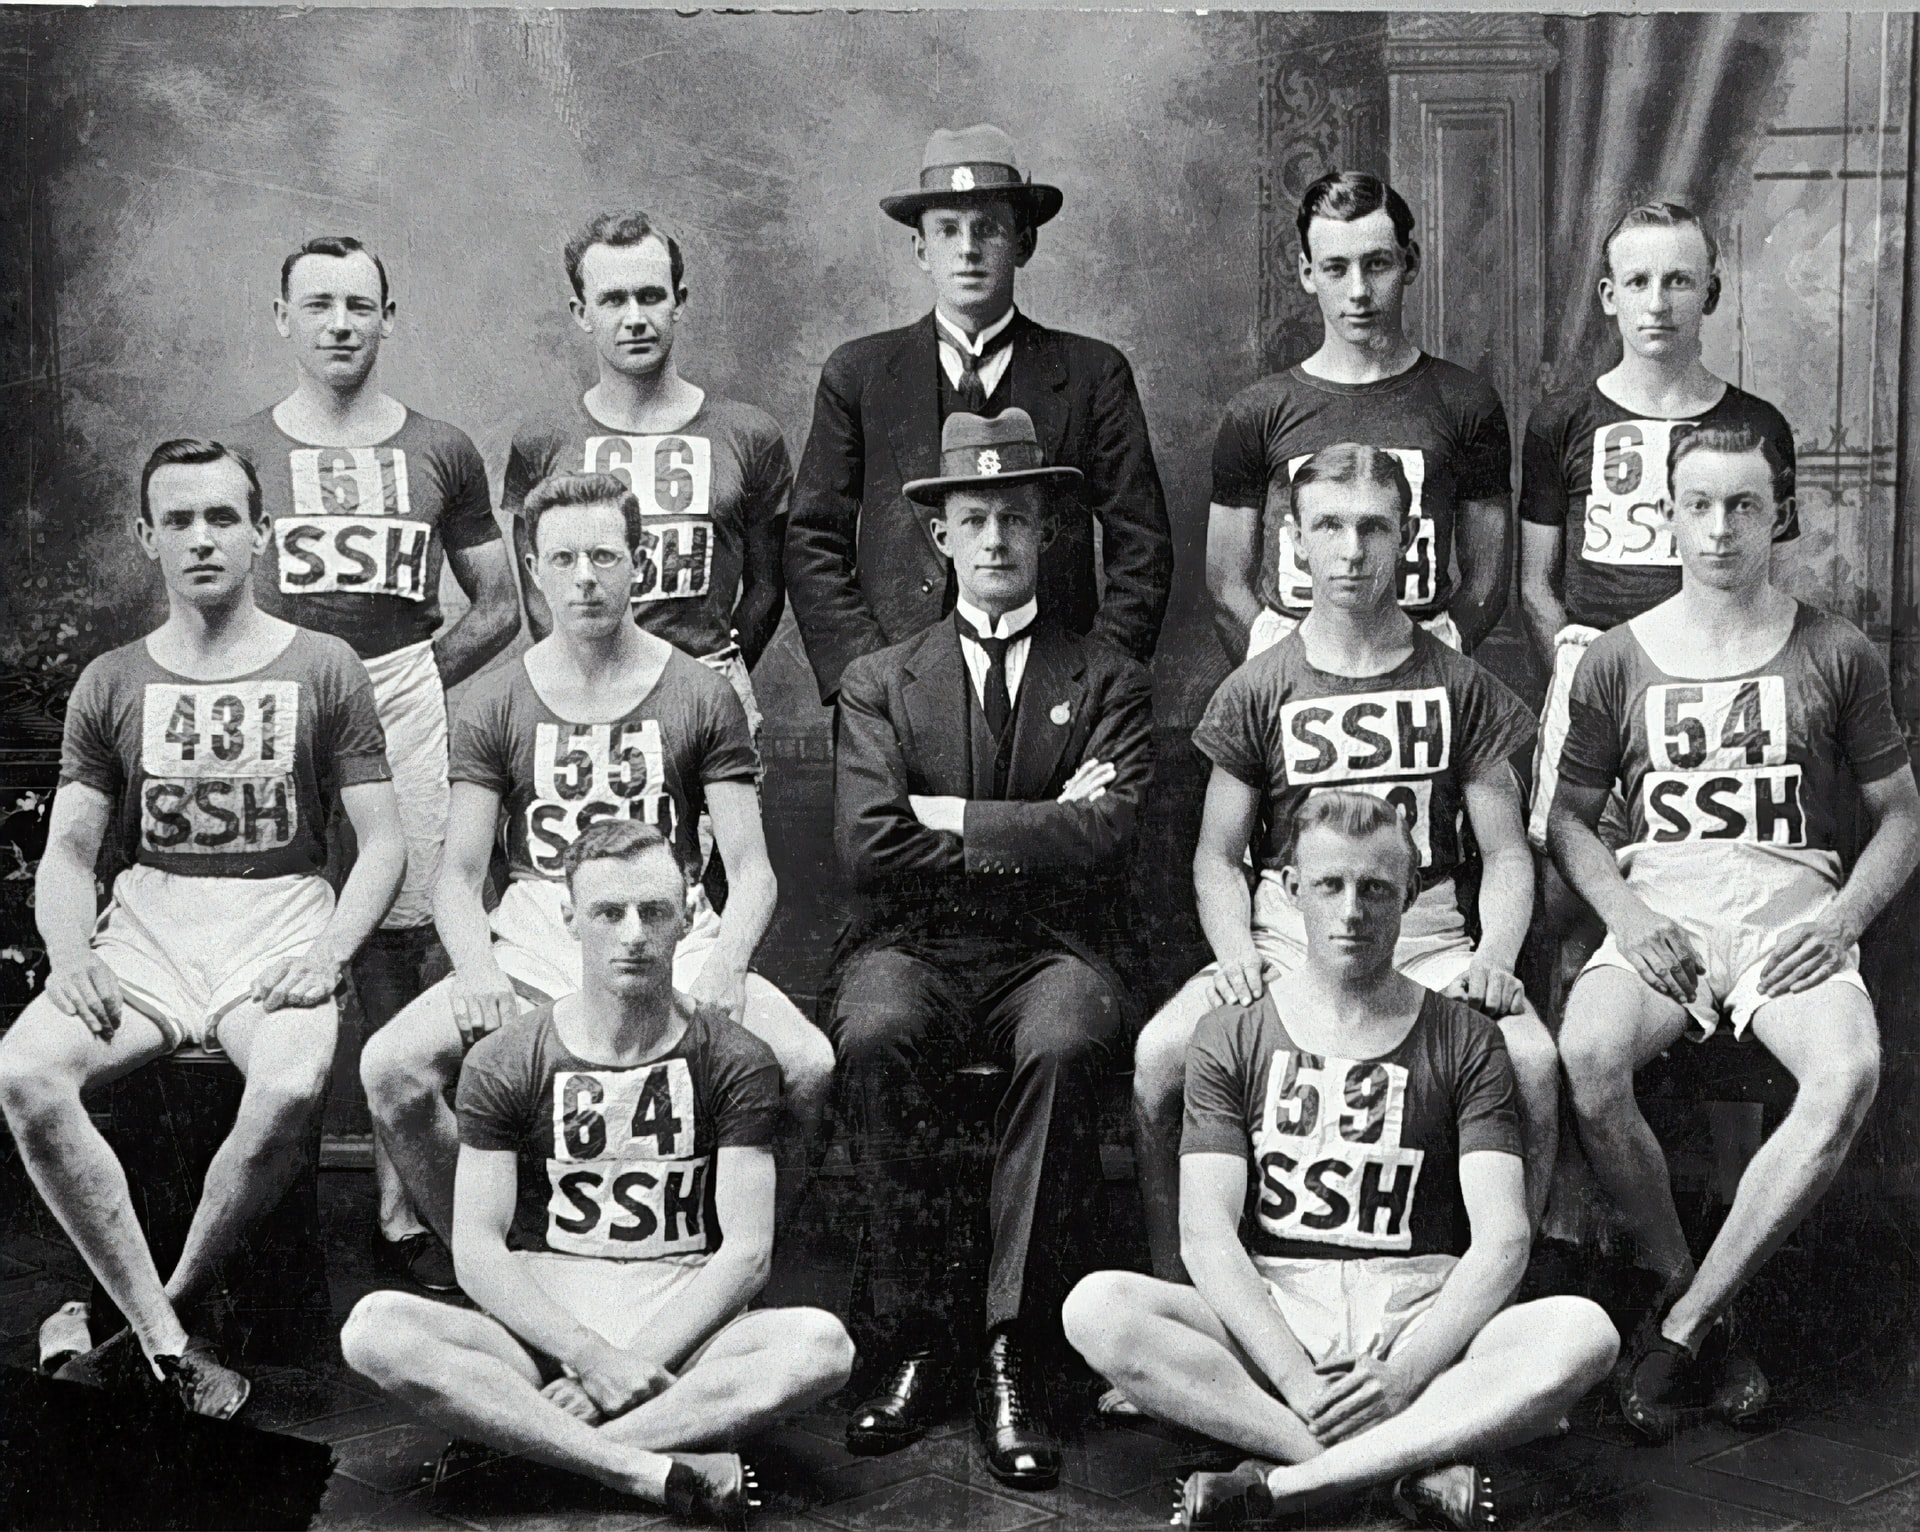 Team portrait of the Street Stephen 's Harriers. They were the cross country champions of Victoria. Team Portrait of the Street Stephen's Harriers, Sydney, New South Wales, 1922. Photo by Museums Victoria on Unsplash